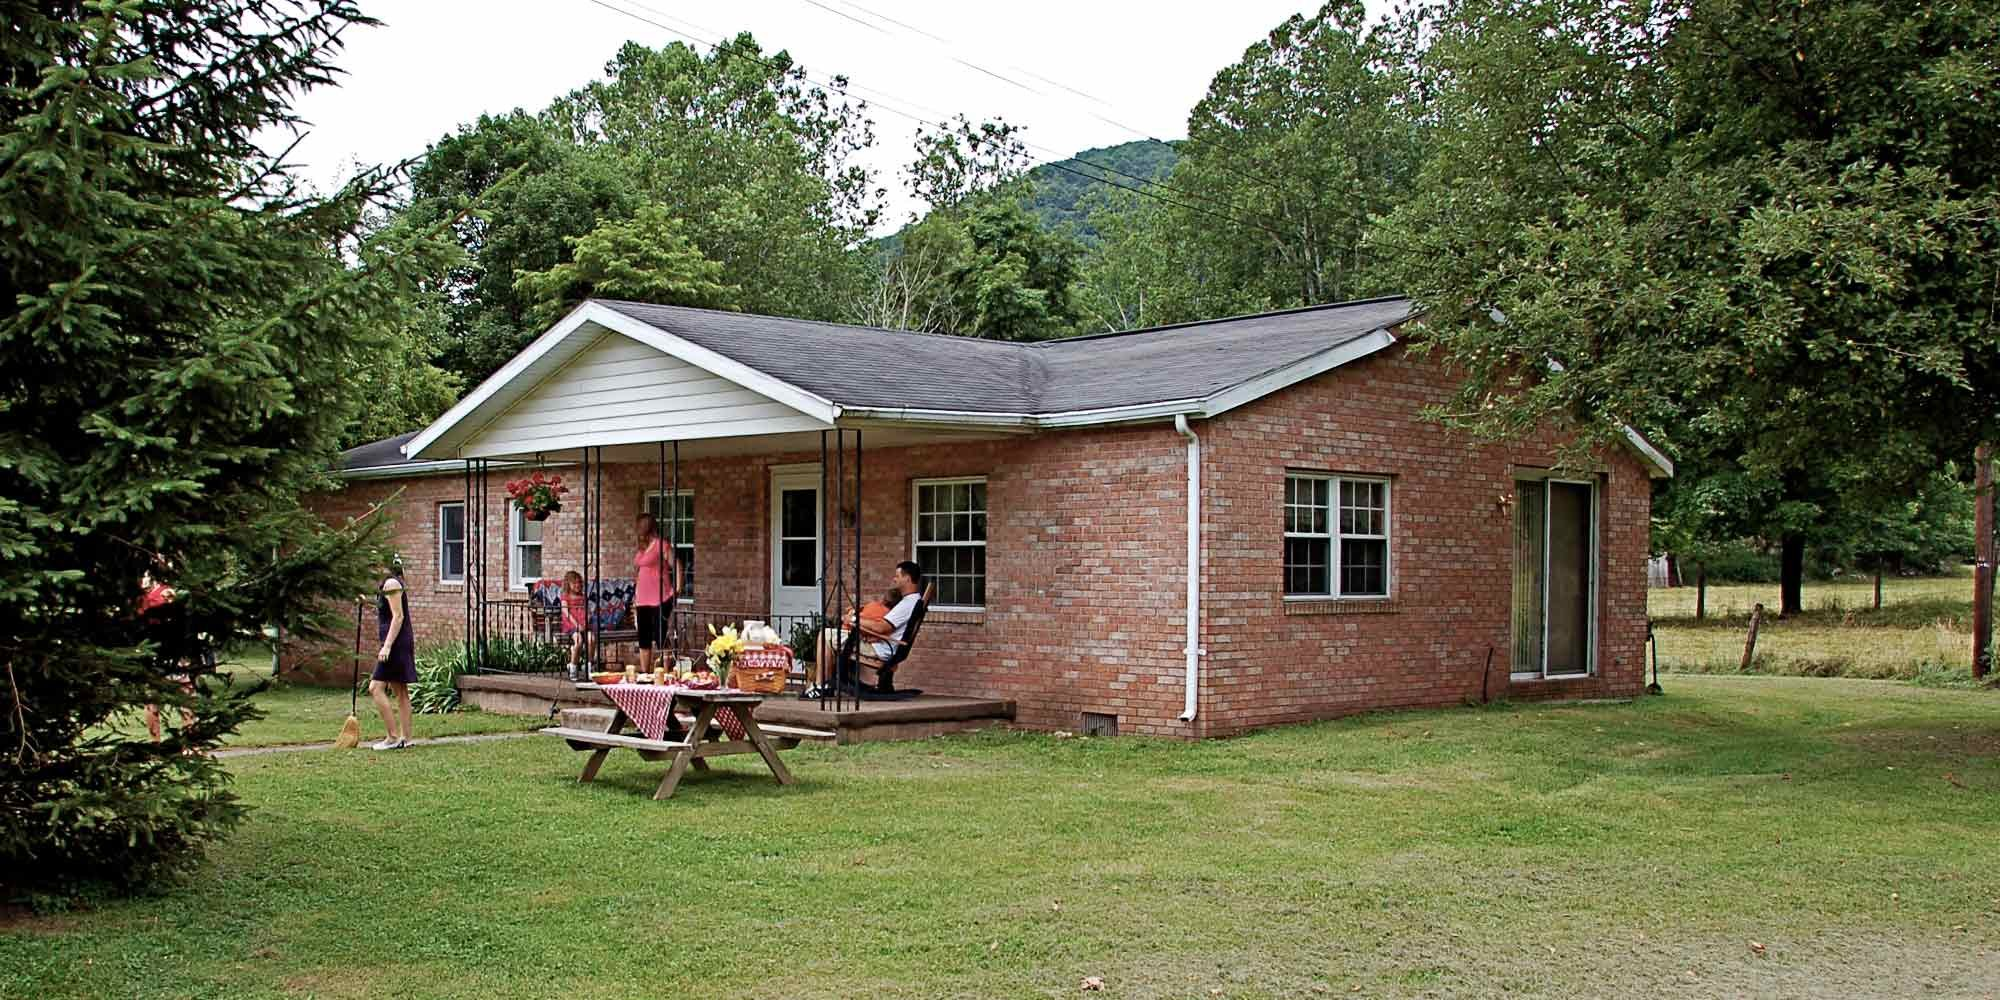 Brick home with porch and picnic table